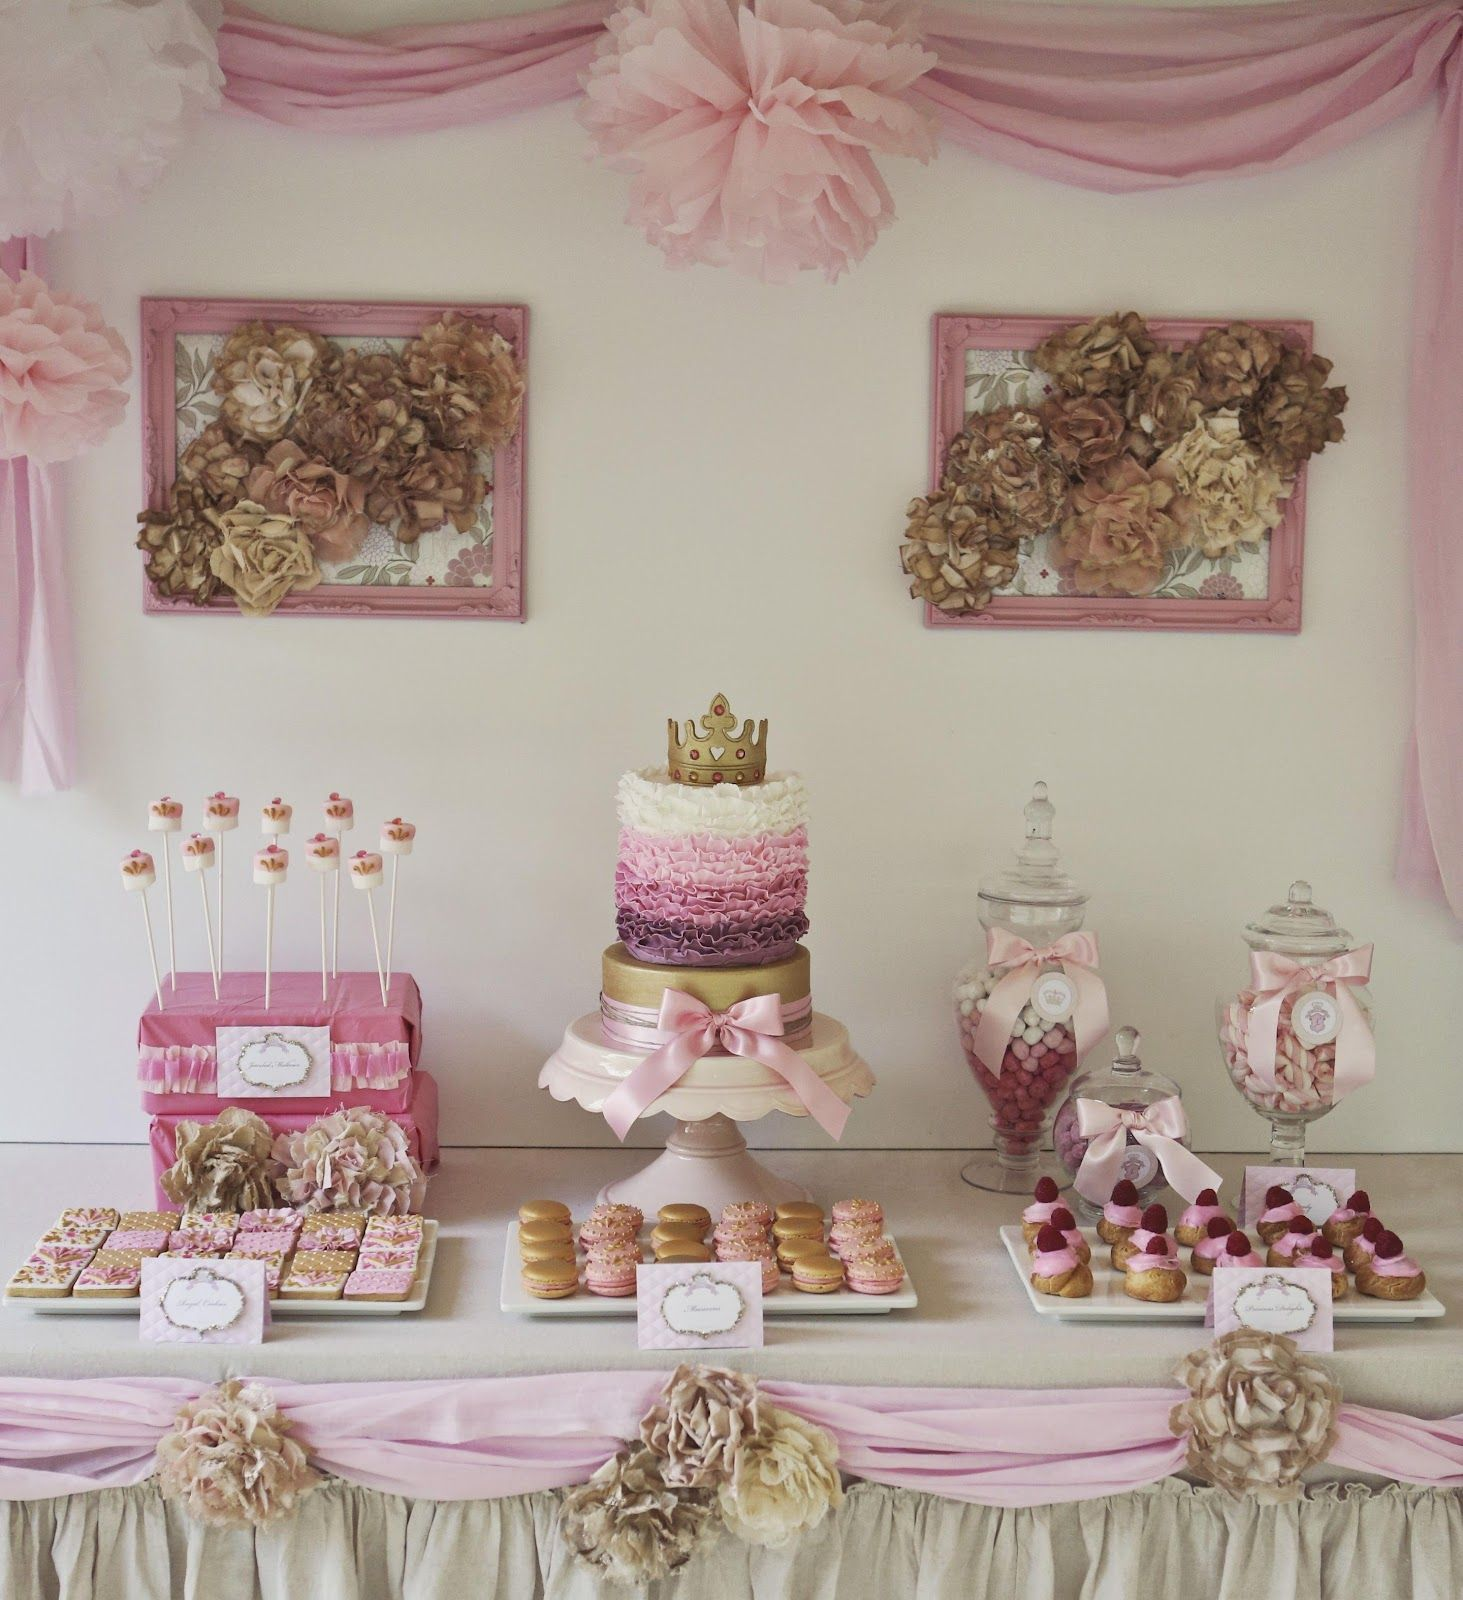 5 year old birthday girl party ideas |  chic princess 8th